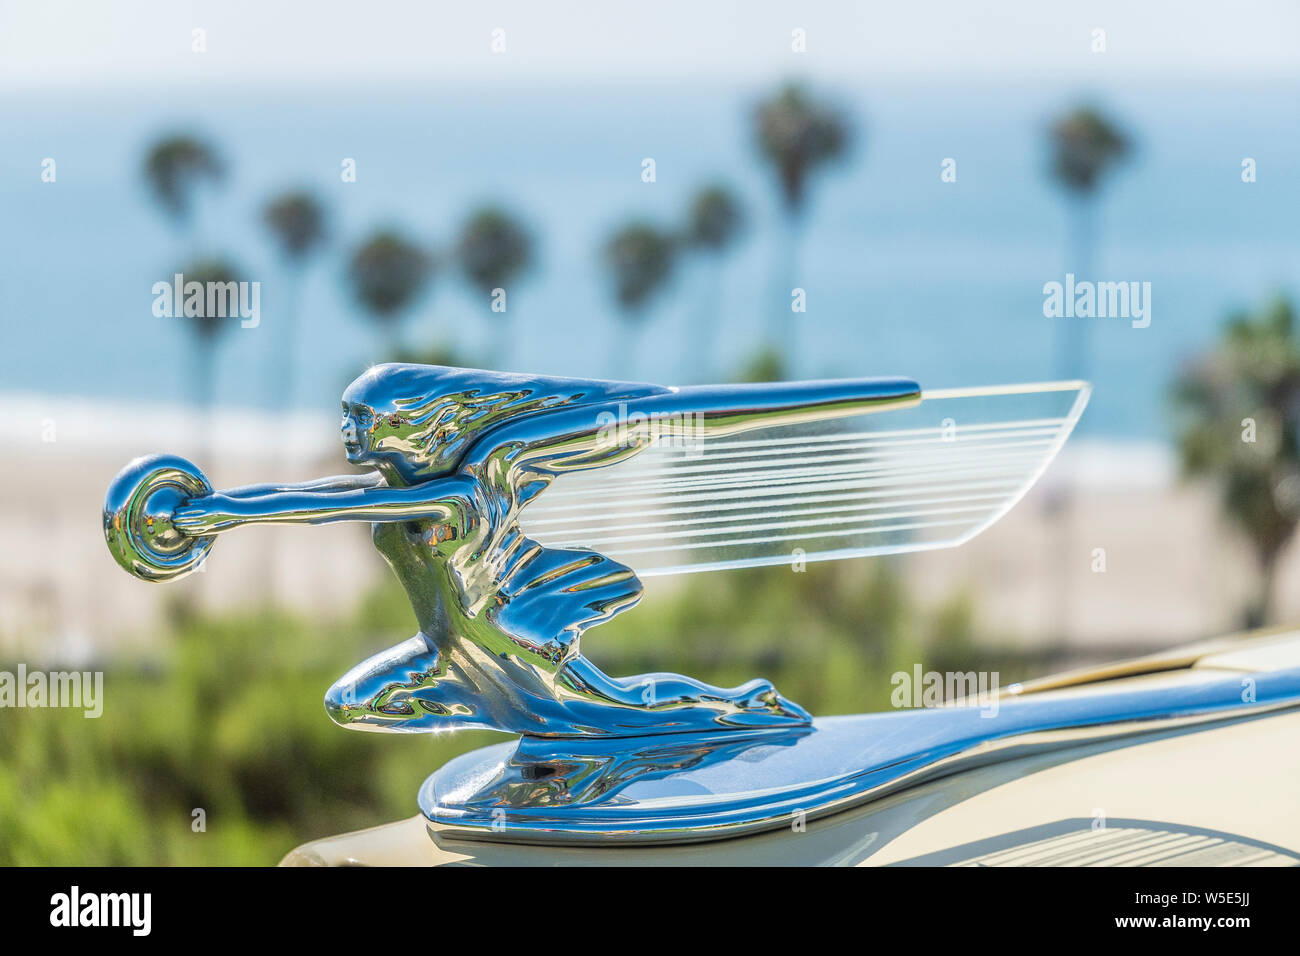 Winged Car Stock Photos & Winged Car Stock Images - Alamy